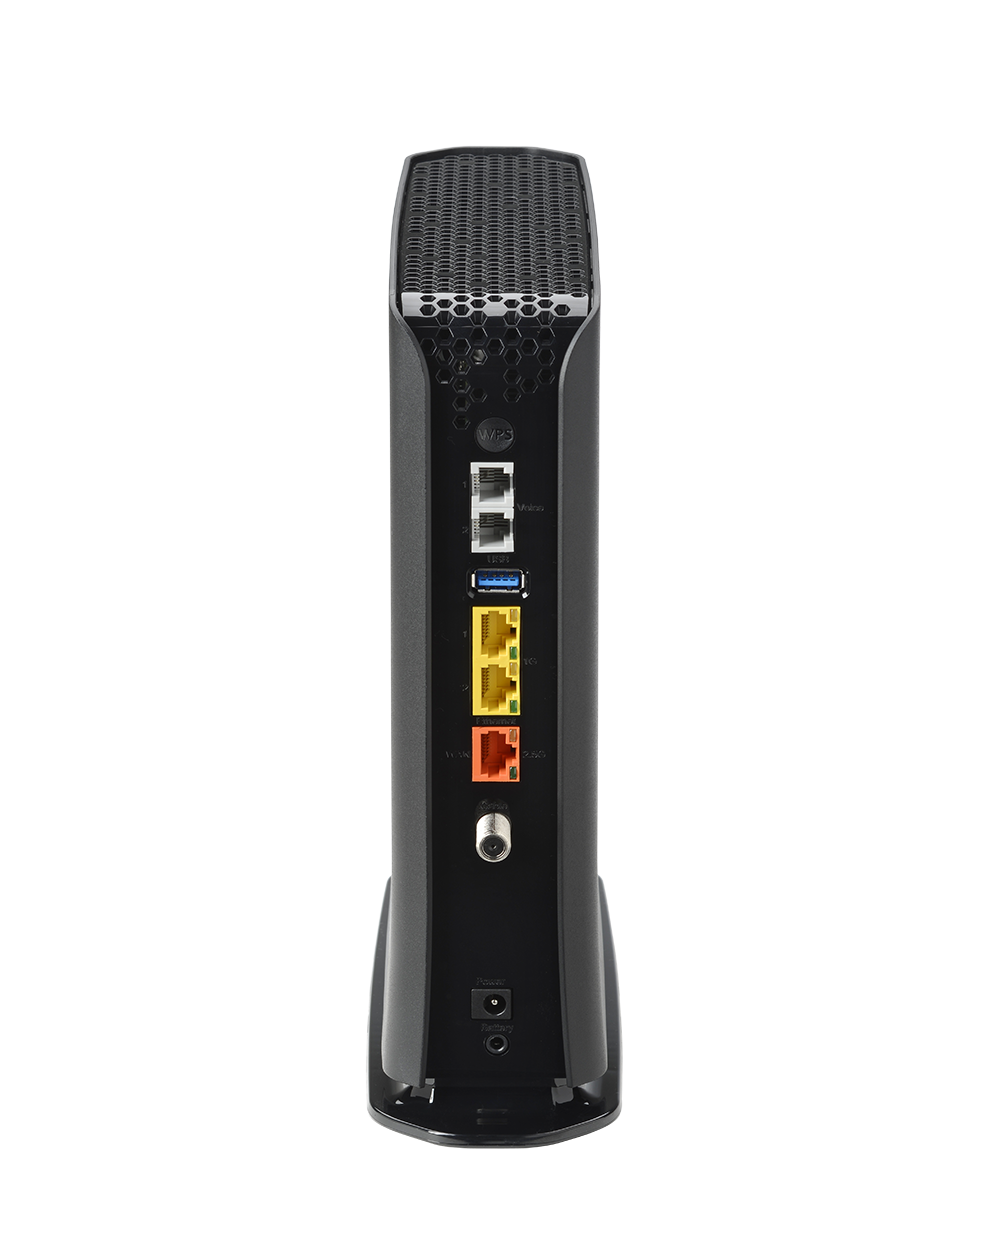 DOCSIS 3.1 Cable Modem Router with Voice - Hitron CODA5814